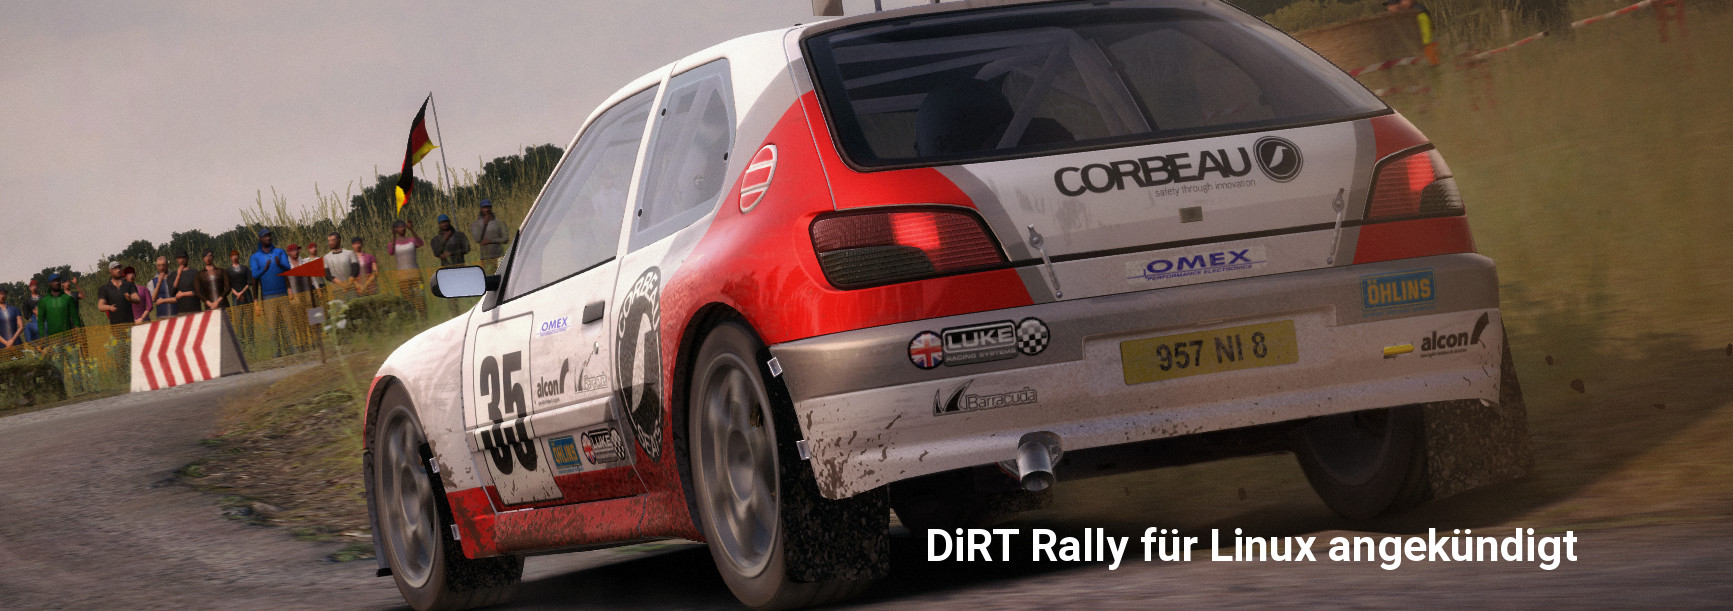 https://www.holarse-linuxgaming.de/sites/default/files/2017-02-02-1/dirt_rally_teaser.jpg